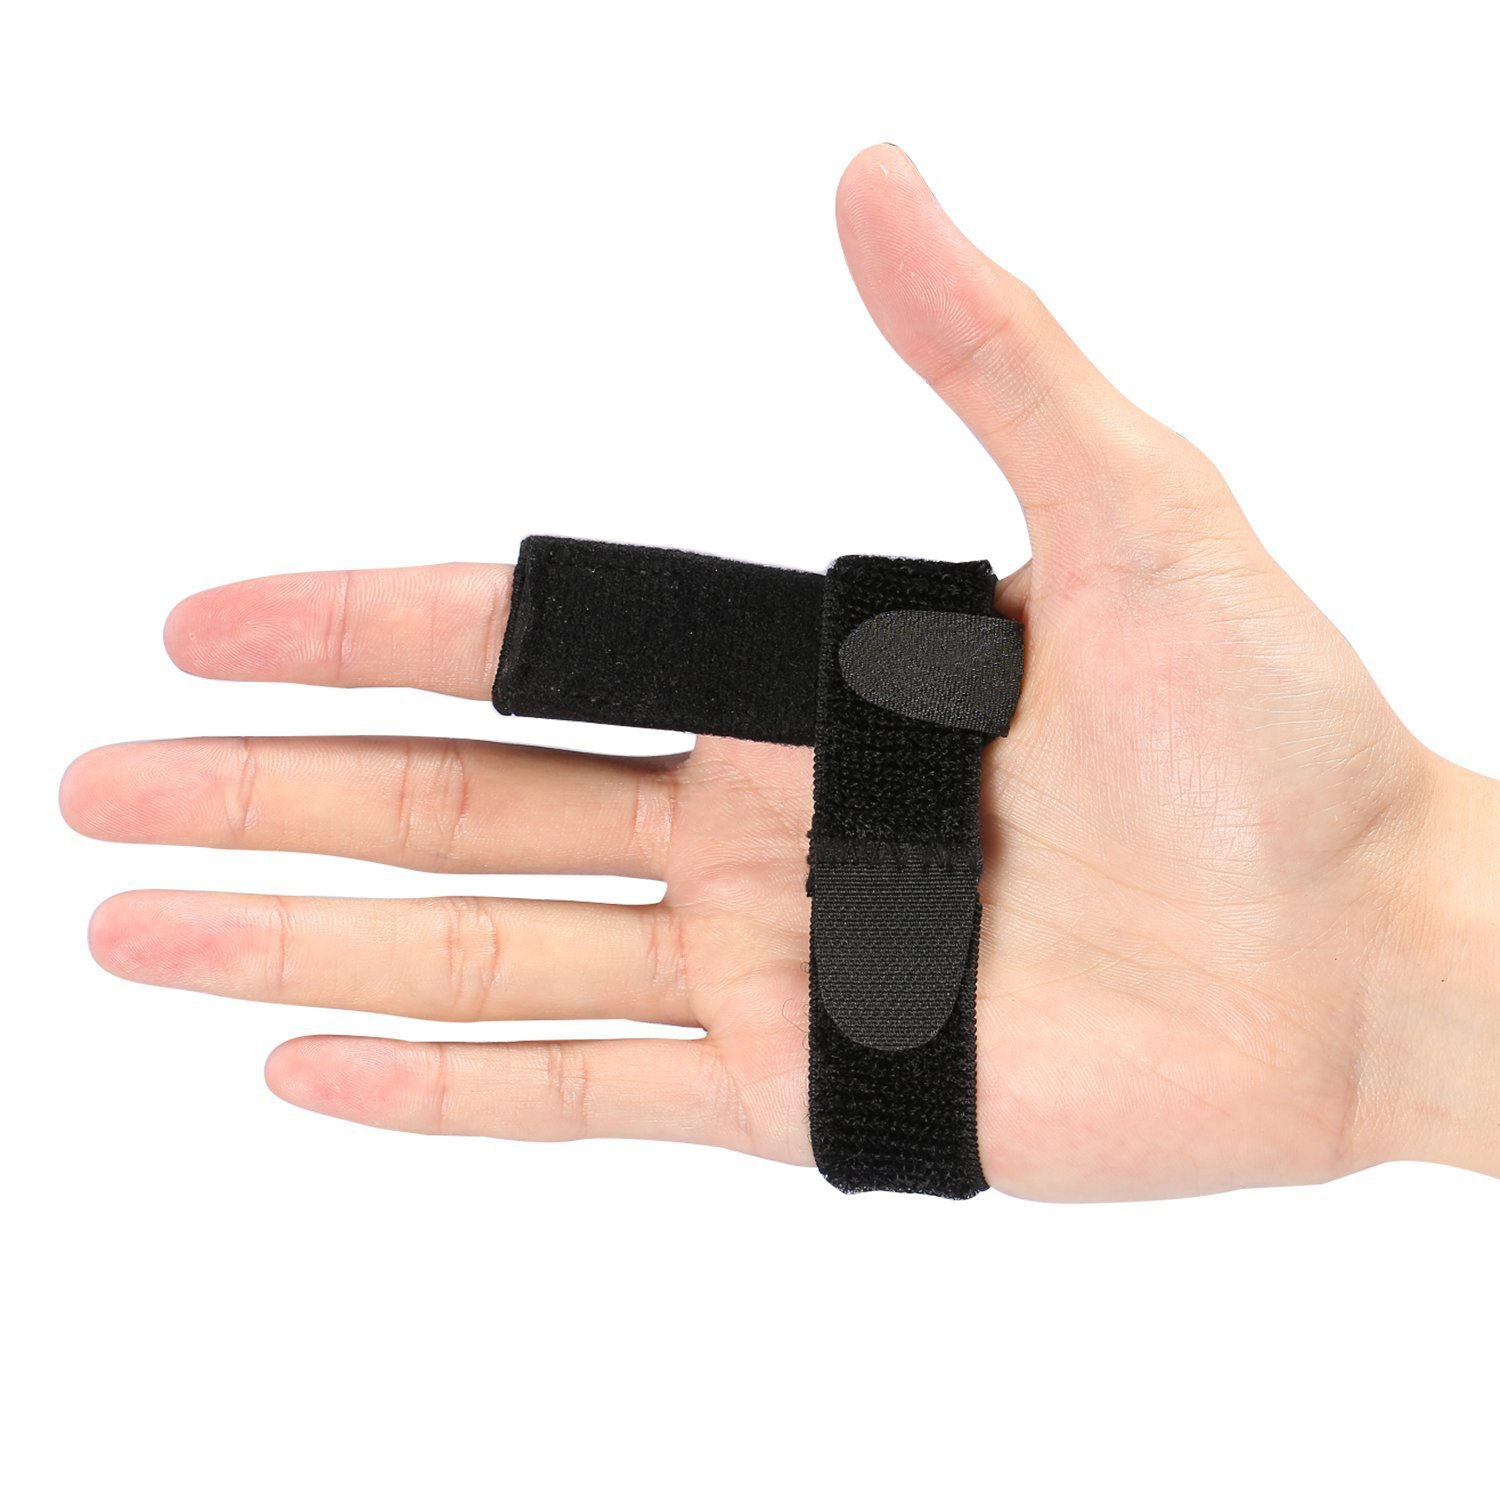 Trigger Finger Splint Protector with Aluminum Bar, Adjustable Elastic Finger Brace for Finger Stiffness, Clicking & Popping, Pain Relief from Stenosing Tenosynovitis